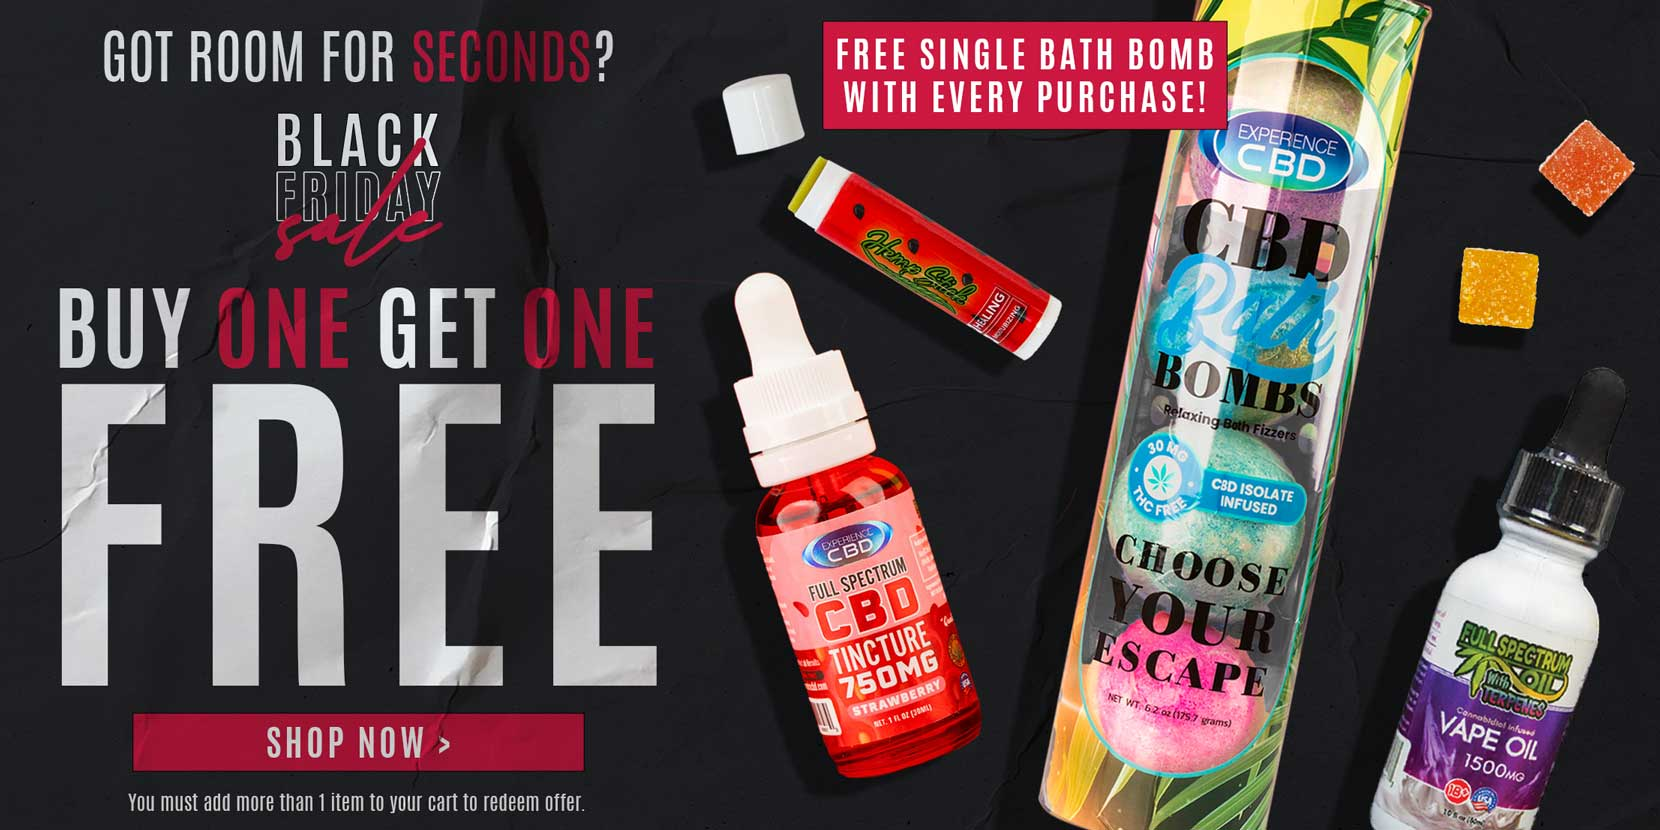 Black friday deals on CBD | CBD for sale | CBD bath bombs for sale | buy one get one free on cbd